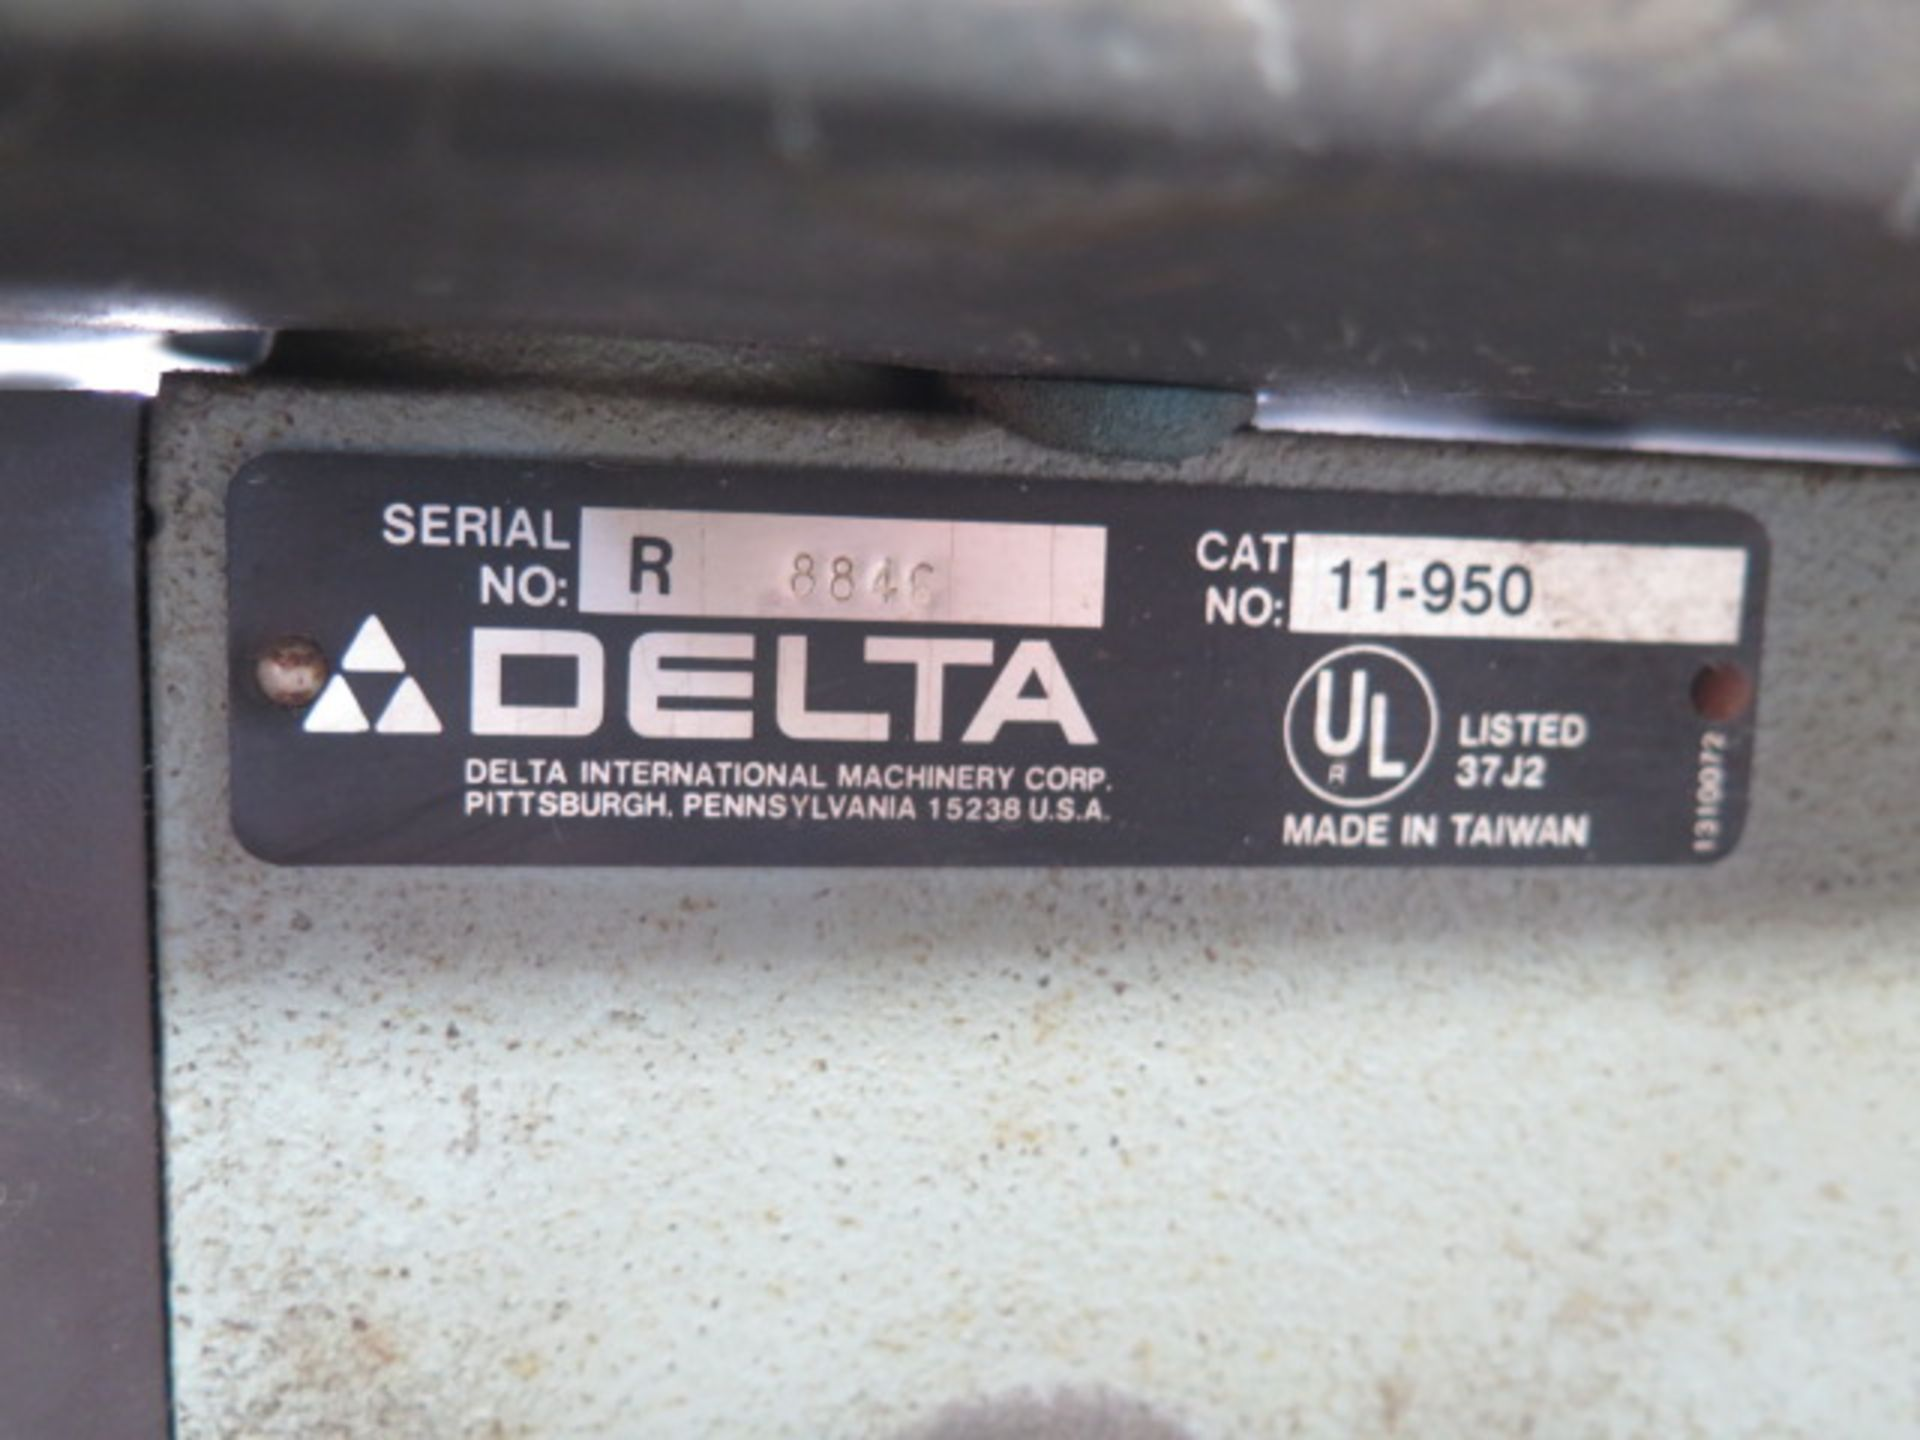 Delta Table Model Drill Press (SOLD AS-IS - NO WARRANTY) - Image 6 of 6